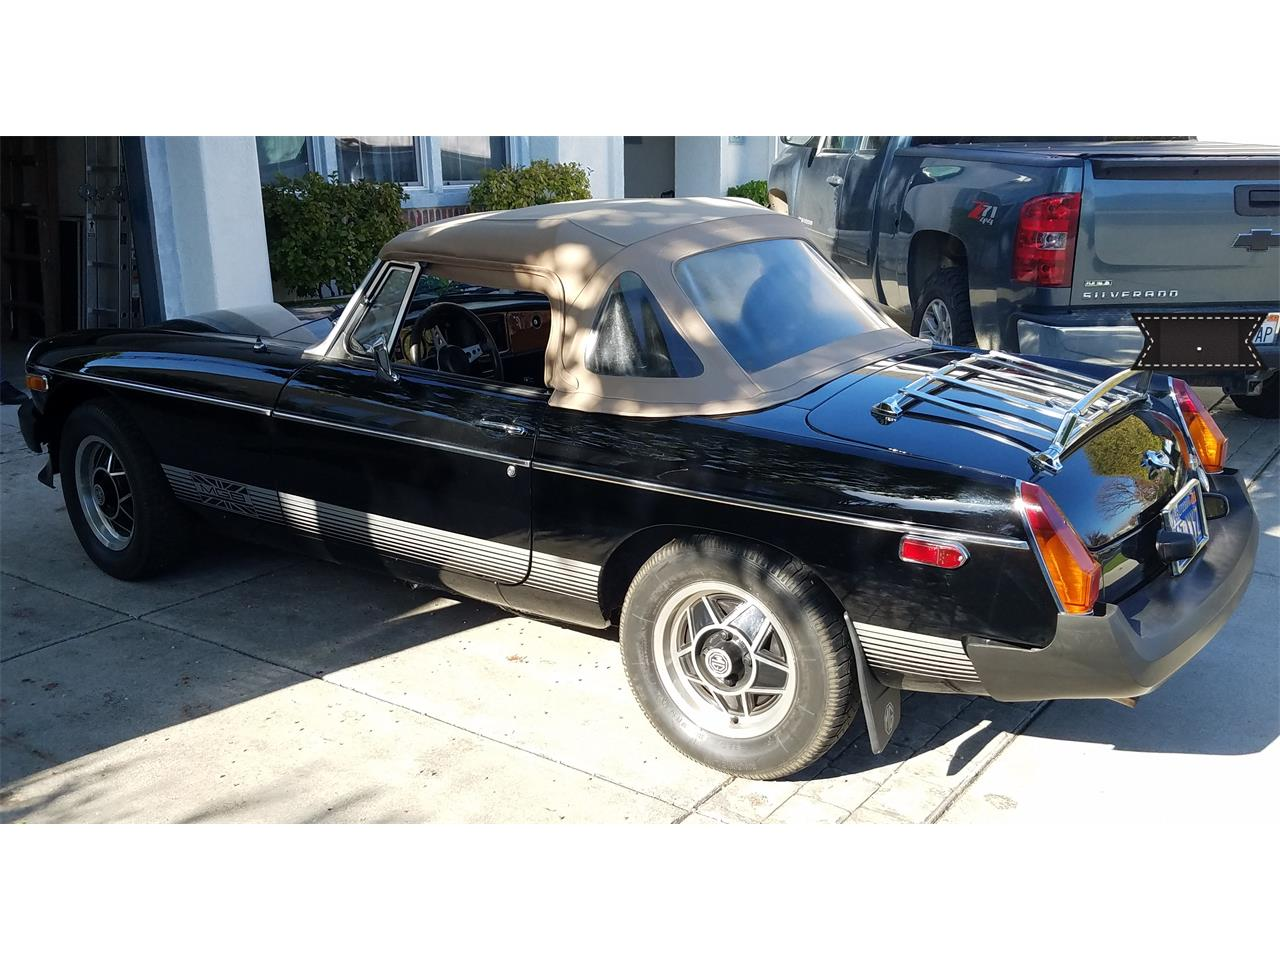 Large Picture of 1979 MG MGB - $9,000.00 Offered by a Private Seller - COAZ